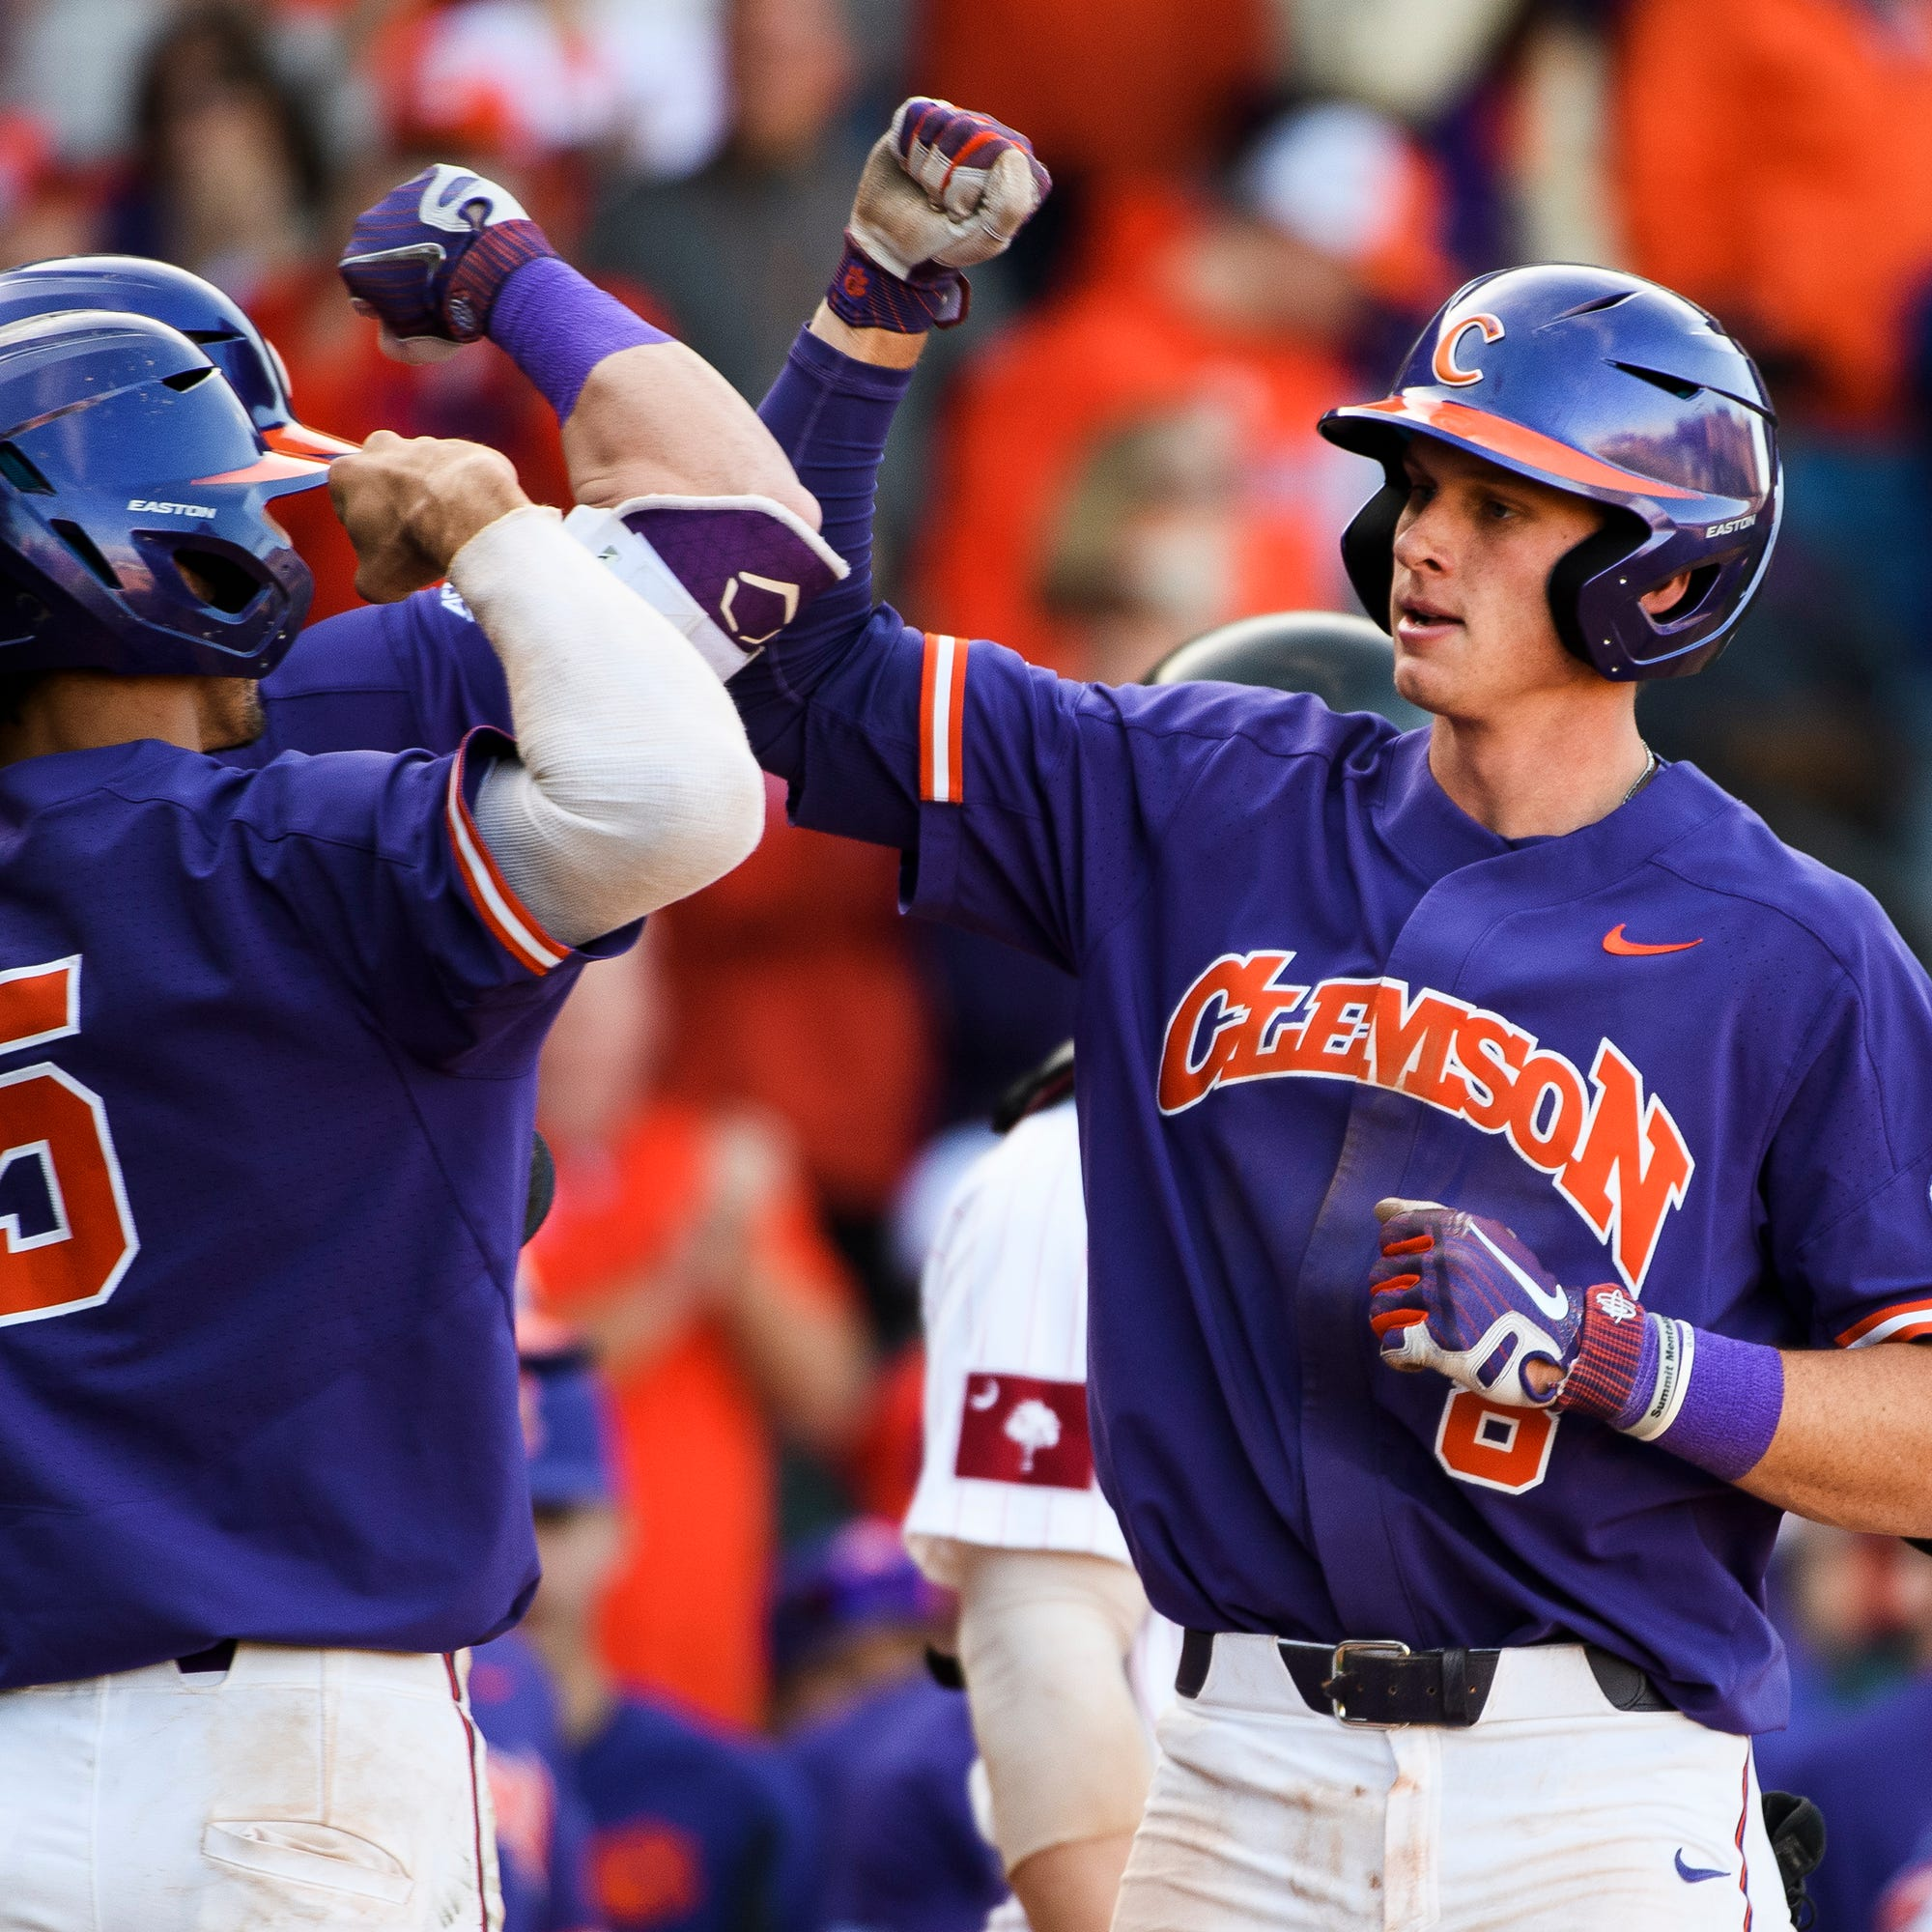 Clemson plays long ball again in Fluor Field victory against Gamecocks